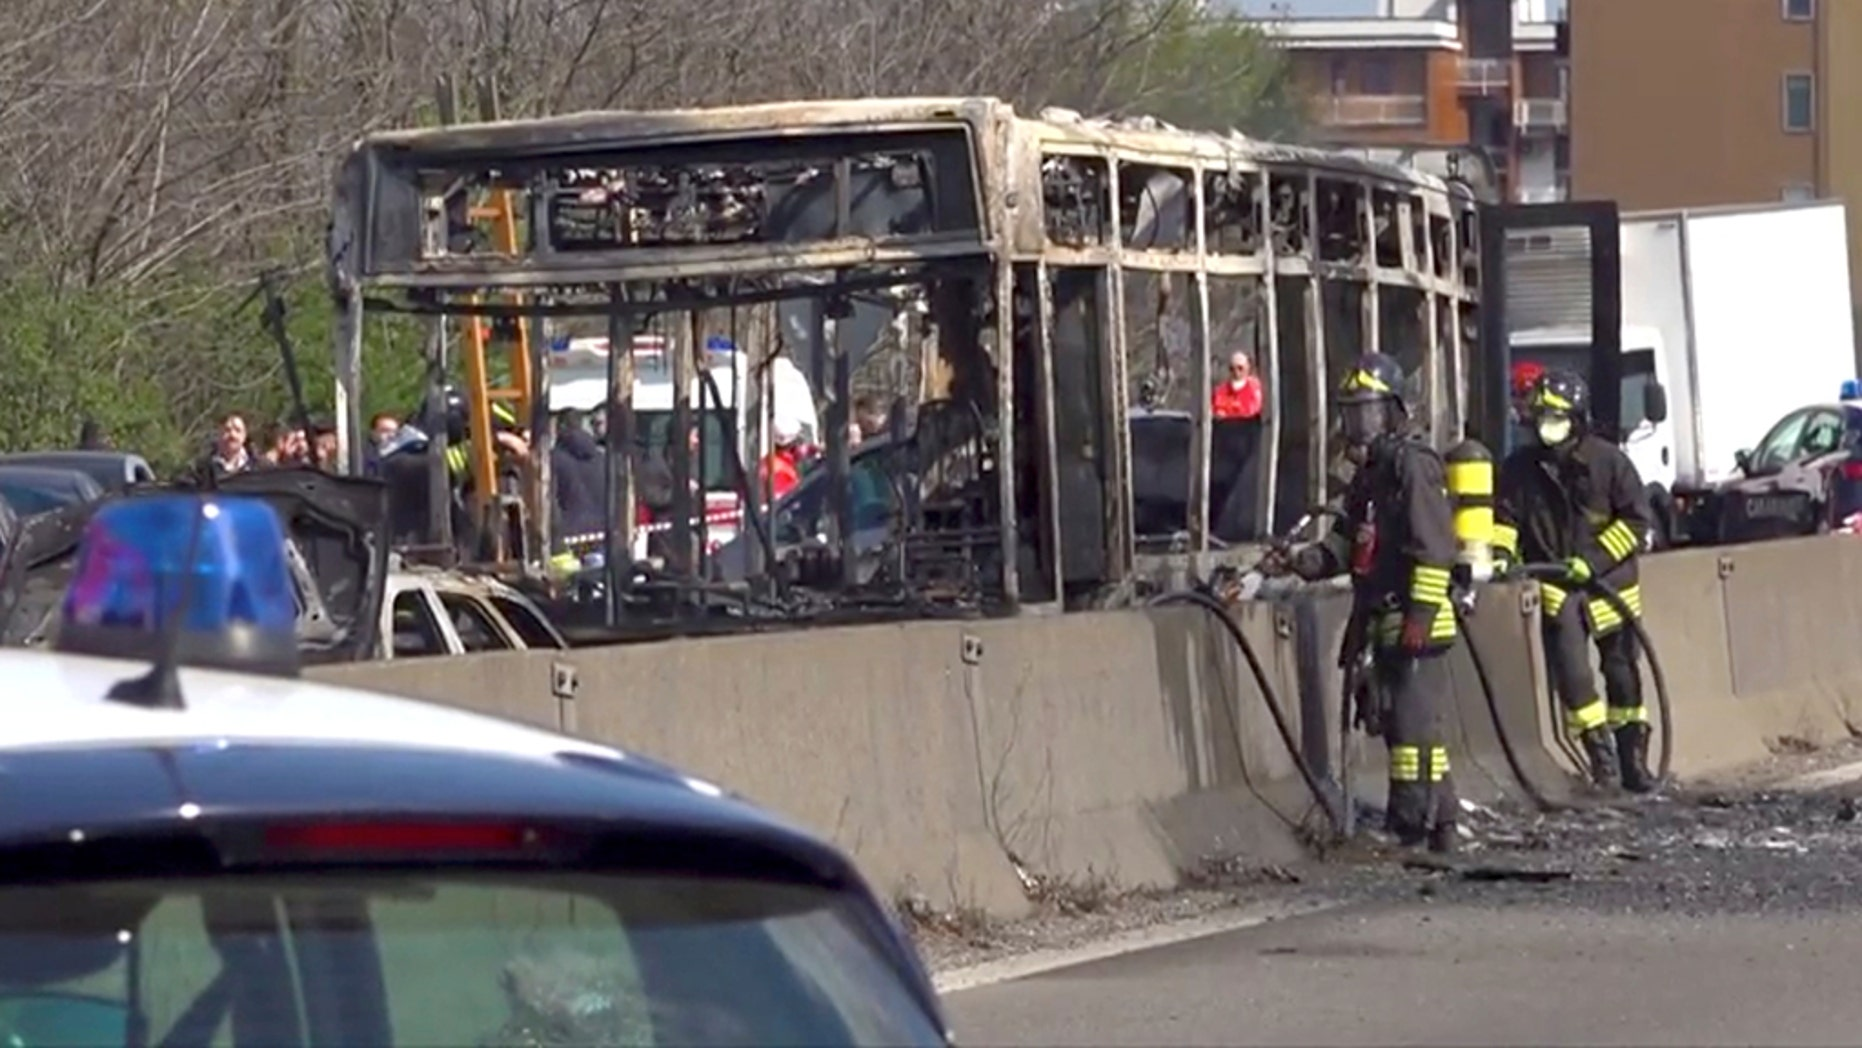 Driver arrested in Milan after allegedly setting school bus on fire